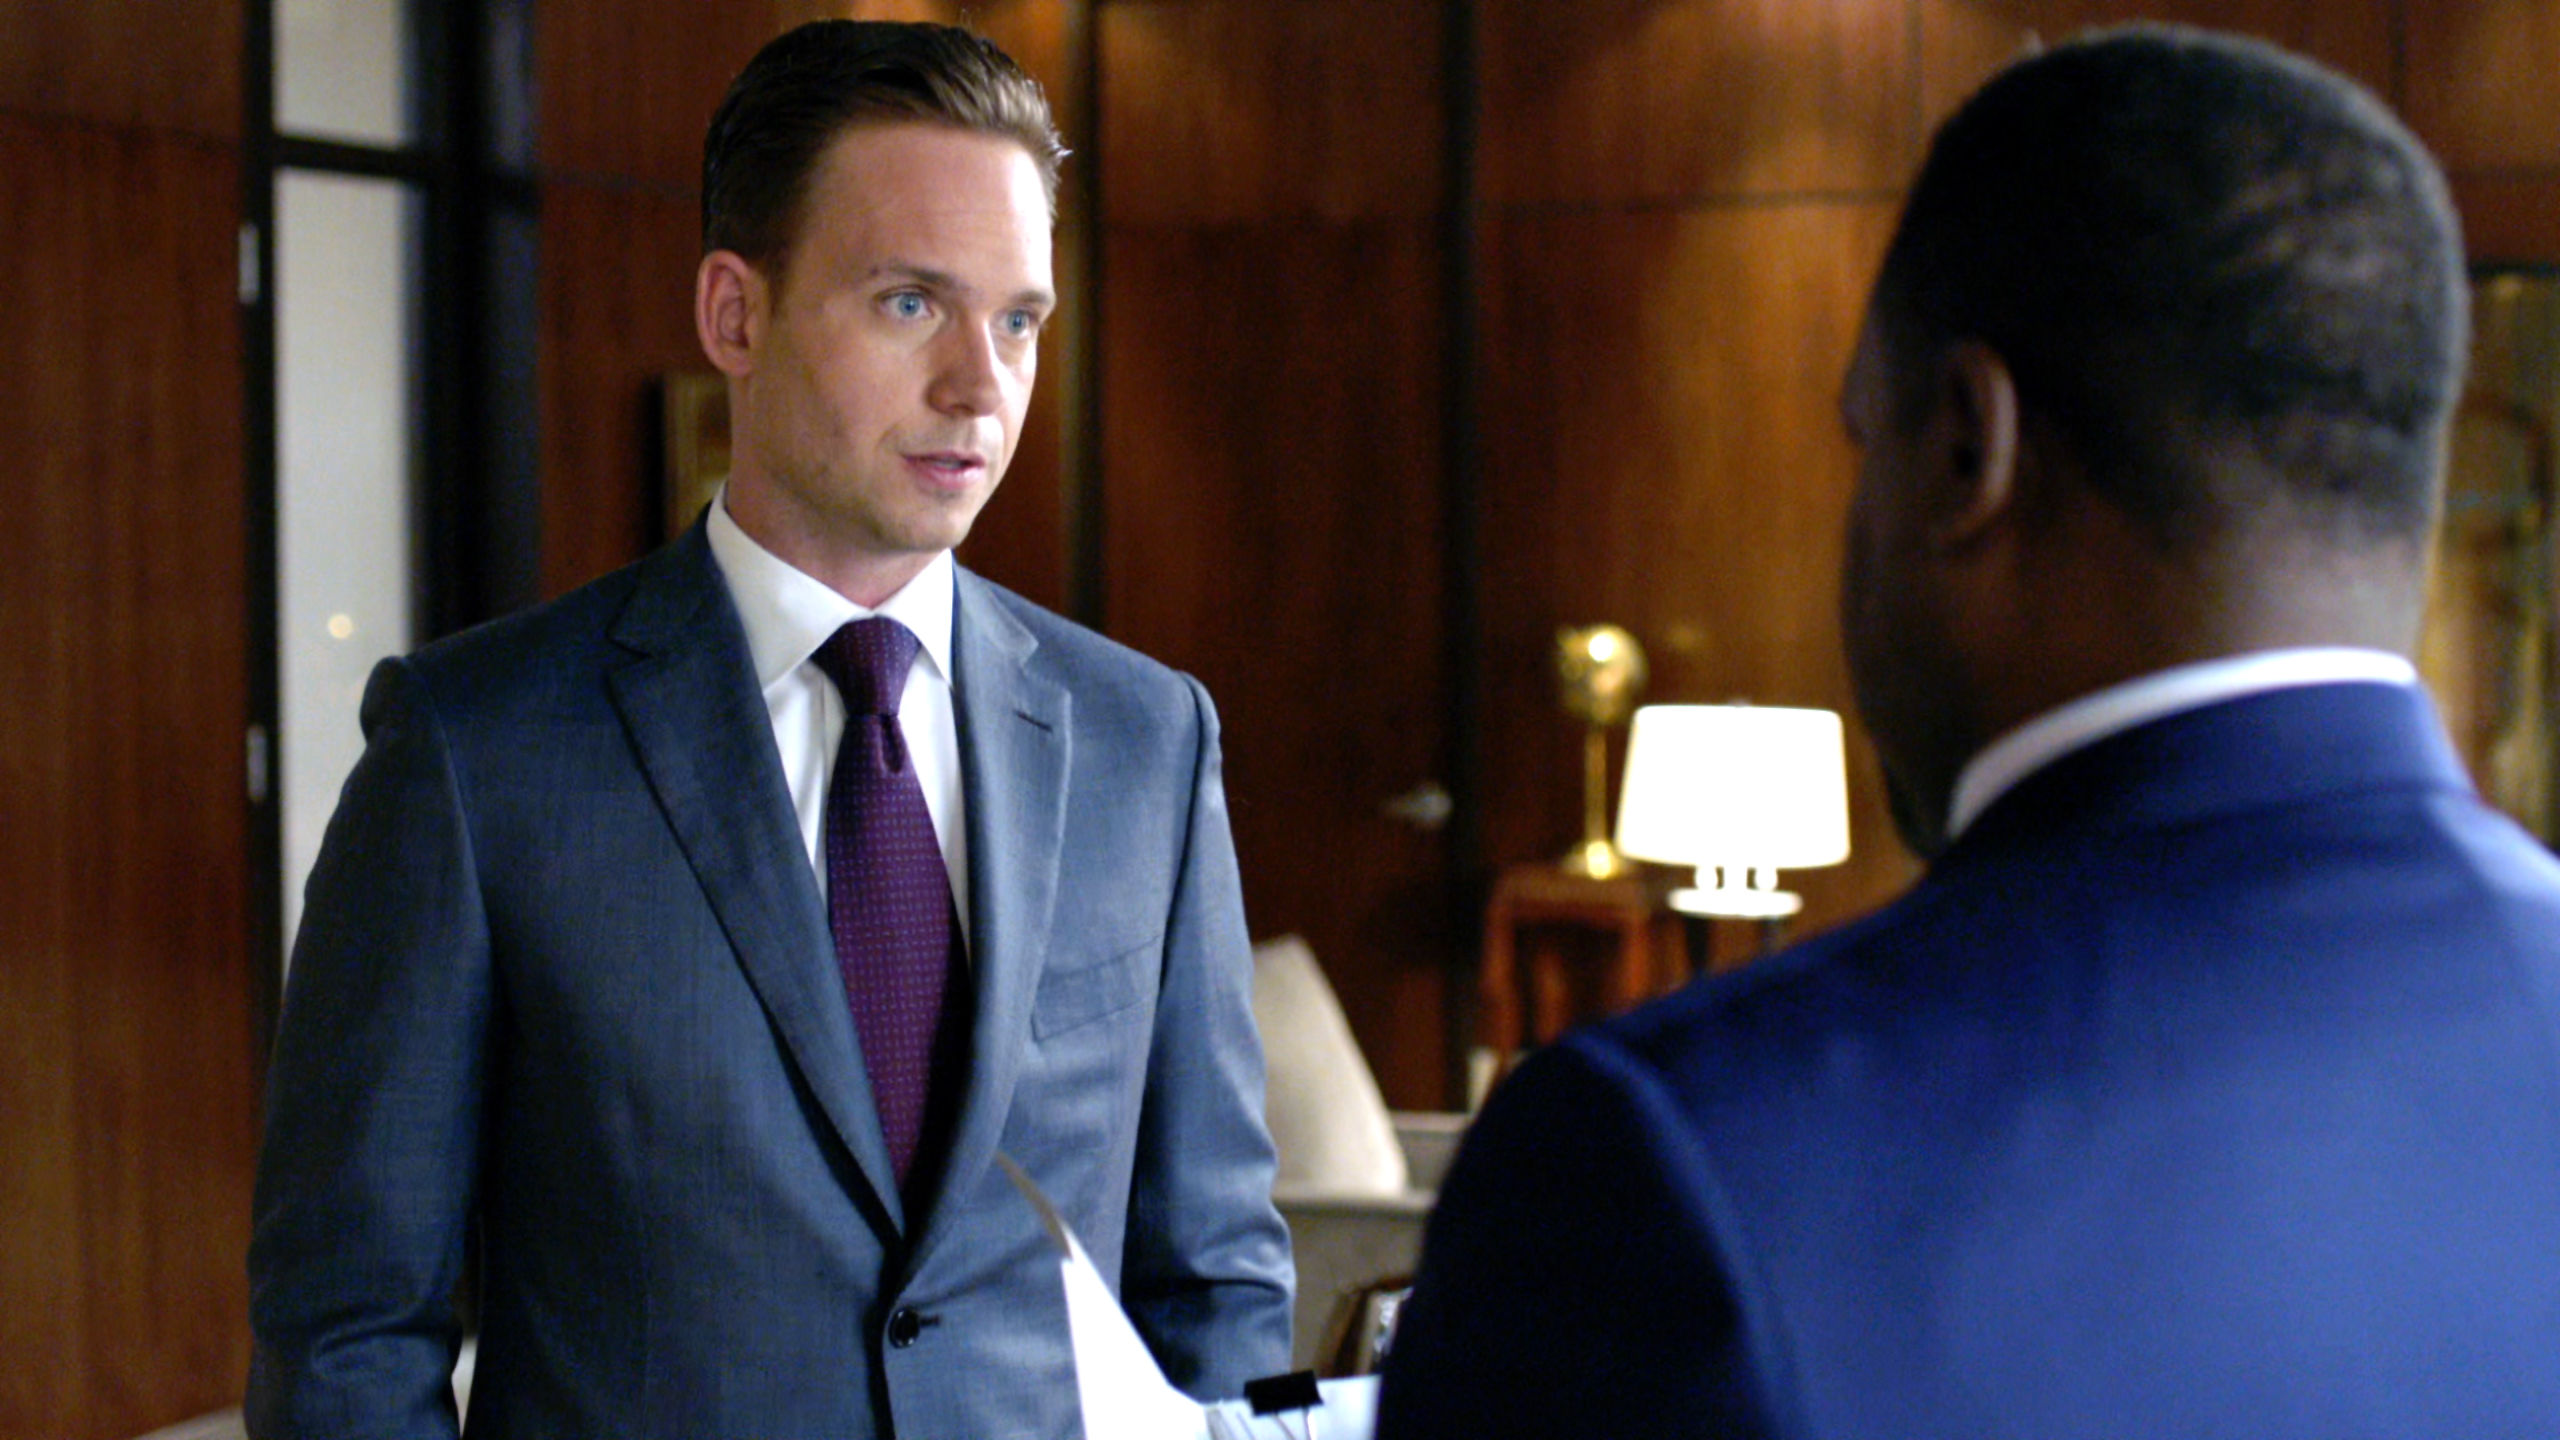 Watch Suits Season 3 Episode 5 Online Free | Rooter Tech